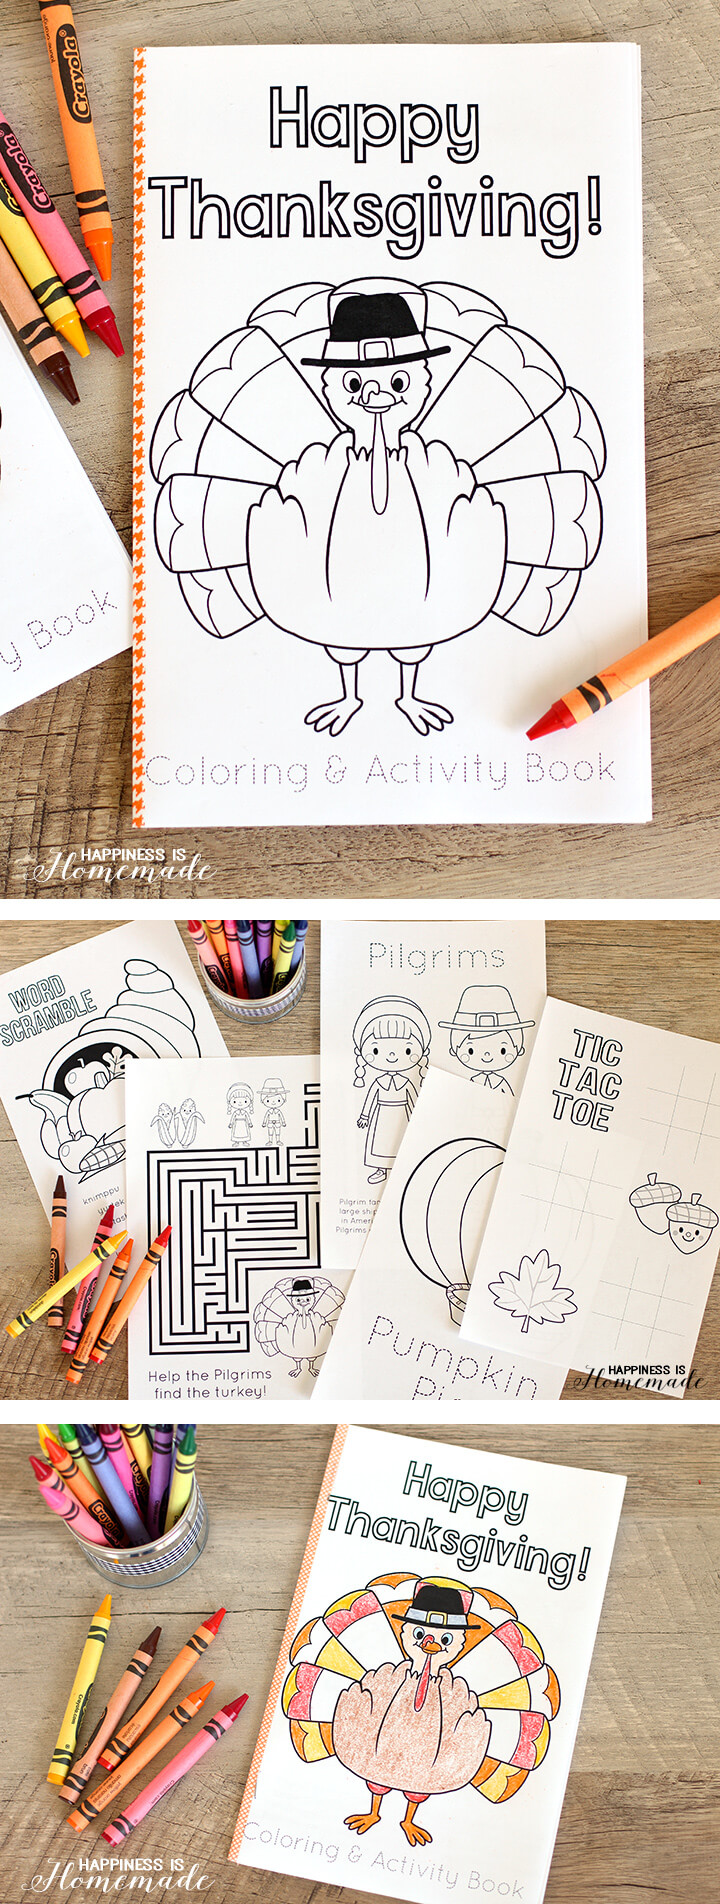 free printable thanksgiving coloring book for the kids table - Kids Activity Book Printable